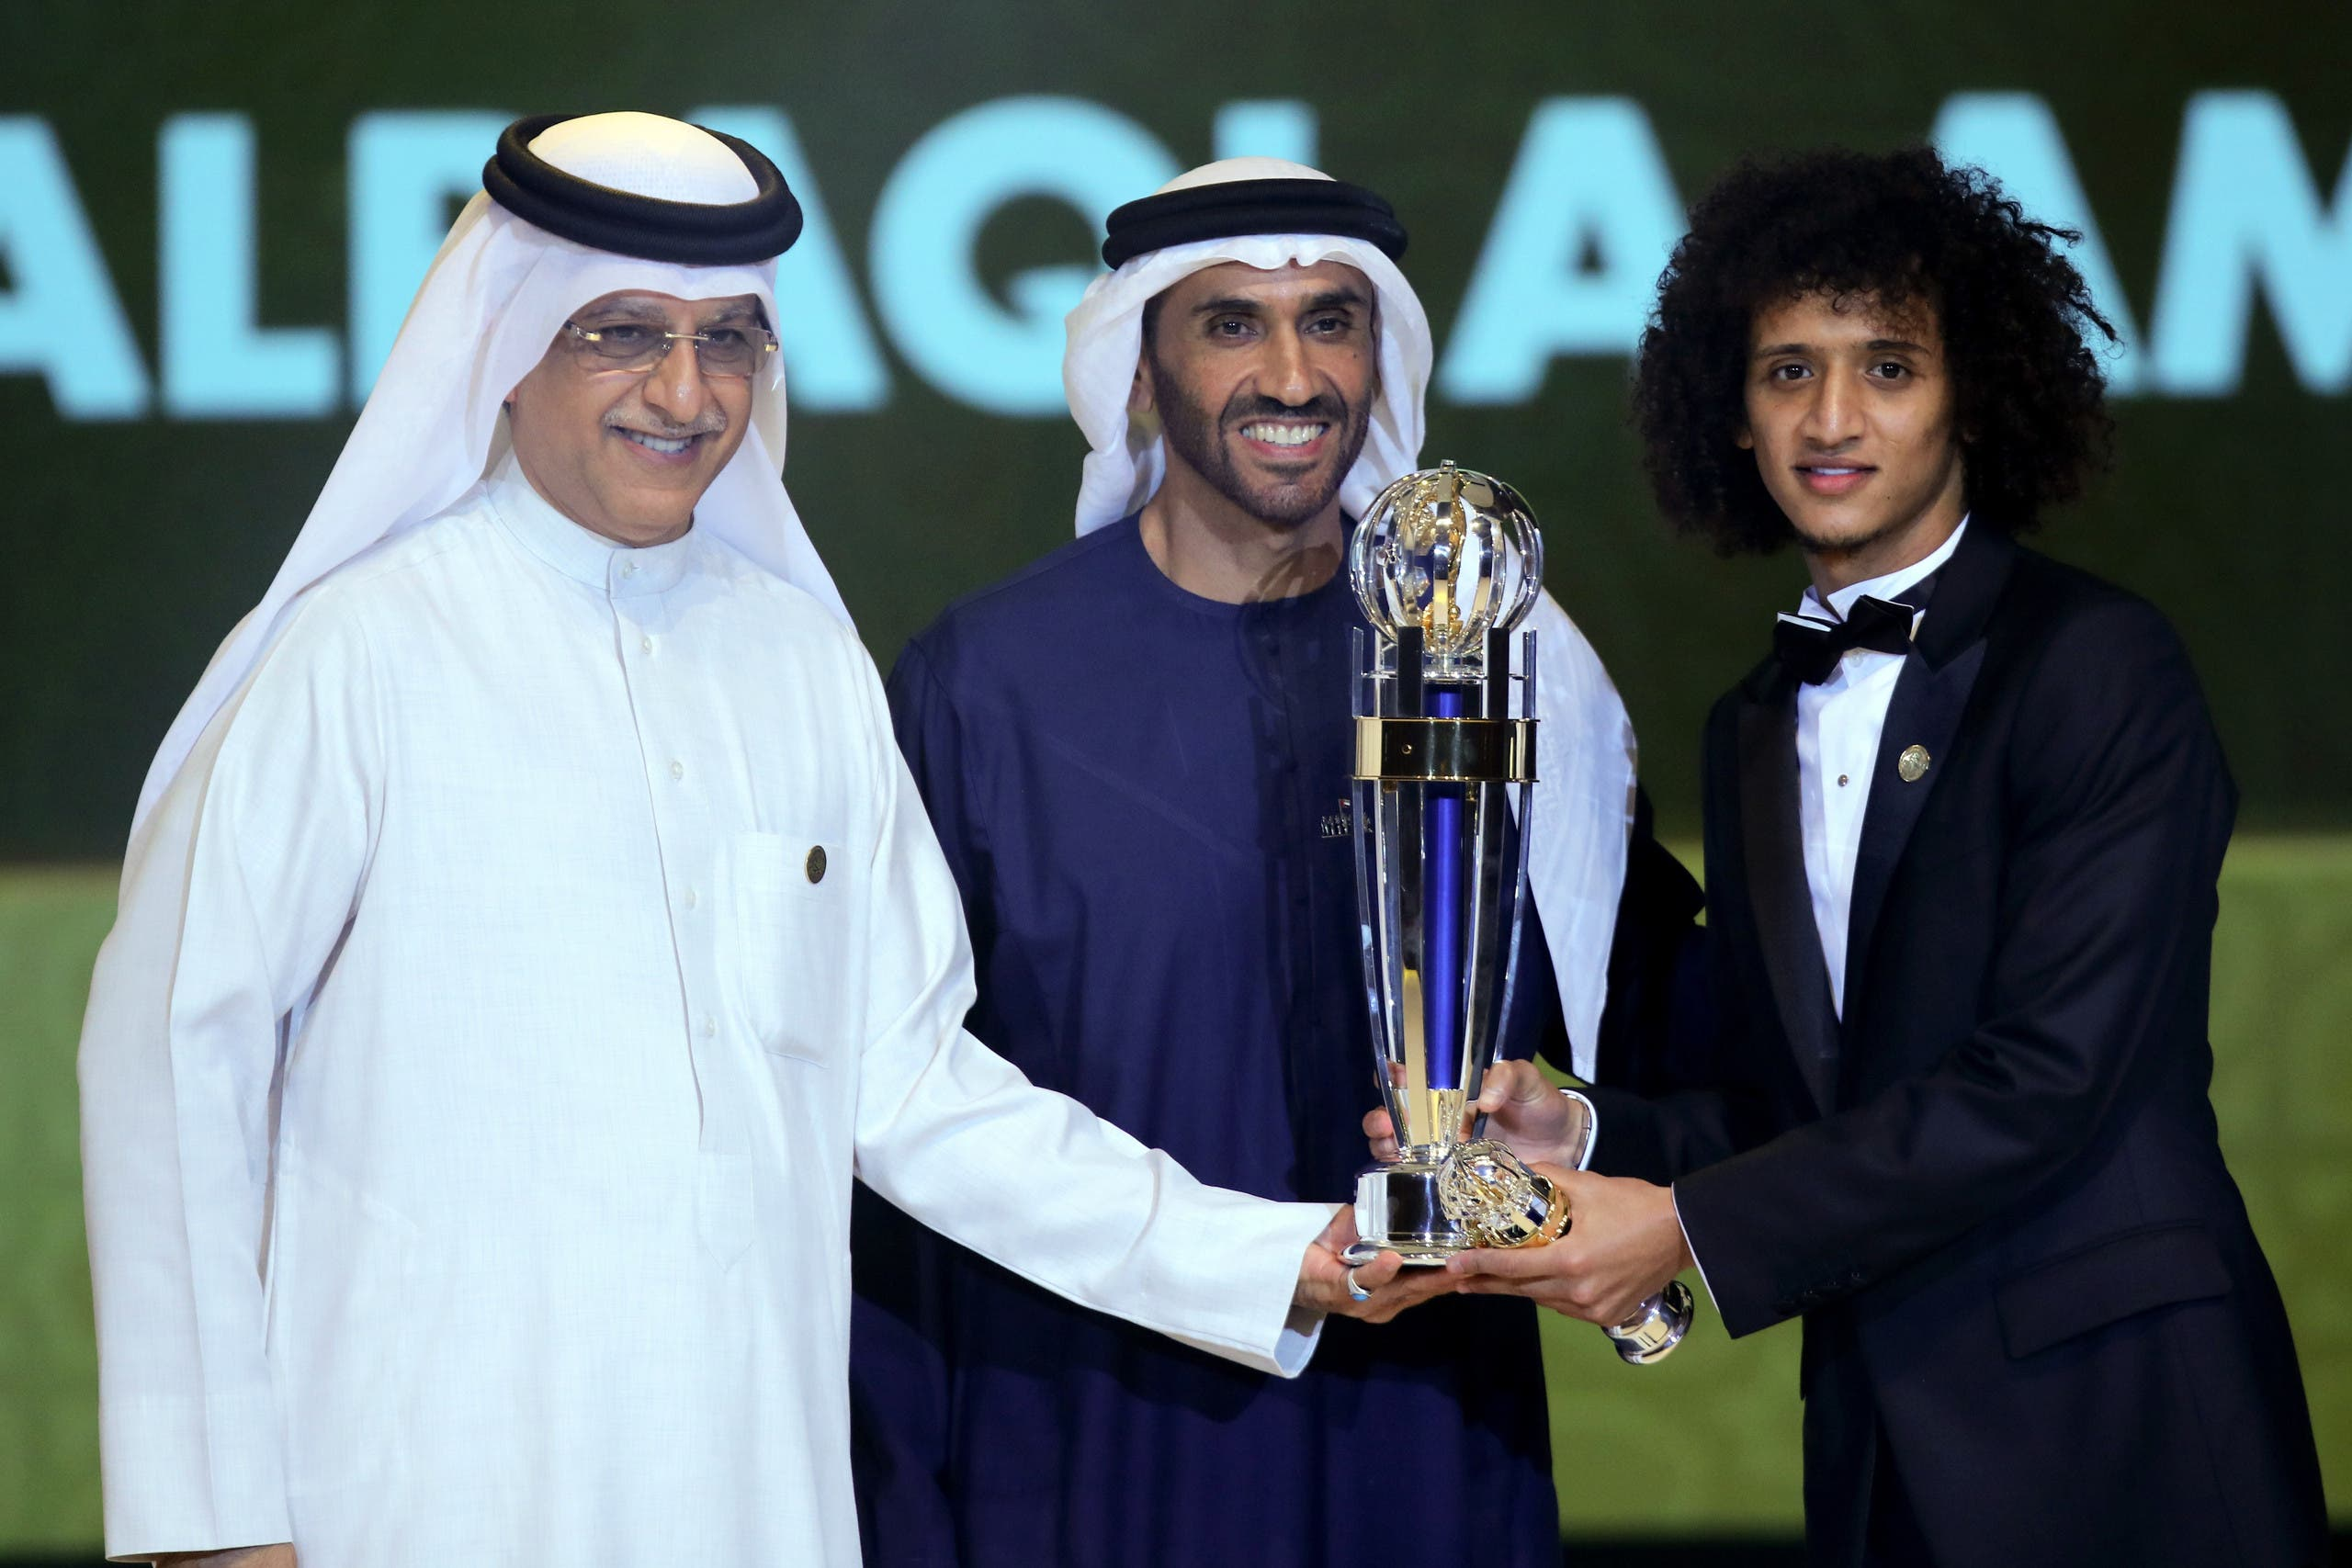 Shaikh Salman bin Ebrahim Al Khalifa (L), President of the Asian Football Confederation (AFC), and Sheikh Nahyan Bin Zayed Al Nahyan (C), Chairman of the Abu Dhabi Sports Council, present Omar Abdulrahman (R) with a trophy after being named the AFC Men's Footballer of the Year during the Asian Football Confederation's Annual Awards ceremony on December 1, 2016 in Abu Dhabi.  NEZAR BALOUT / AFP